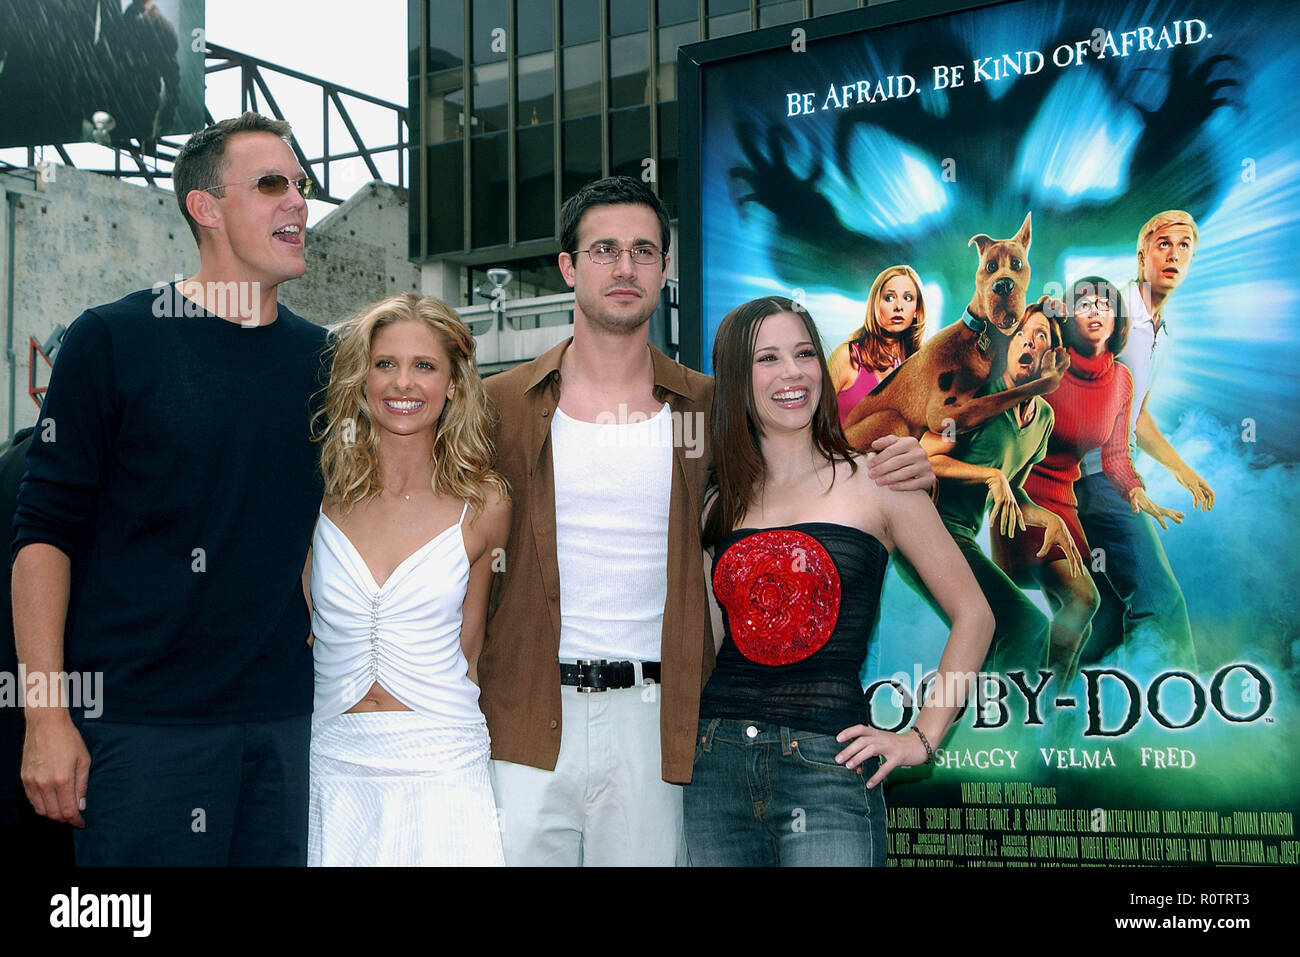 The Cast Of Scooby Doo Matthew Lillard Sarah Michelle Gellar Freddie Prinze Jr And Linda Cardellini Pose At The Premiere Of Scooby Doo At The C Stock Photo Alamy